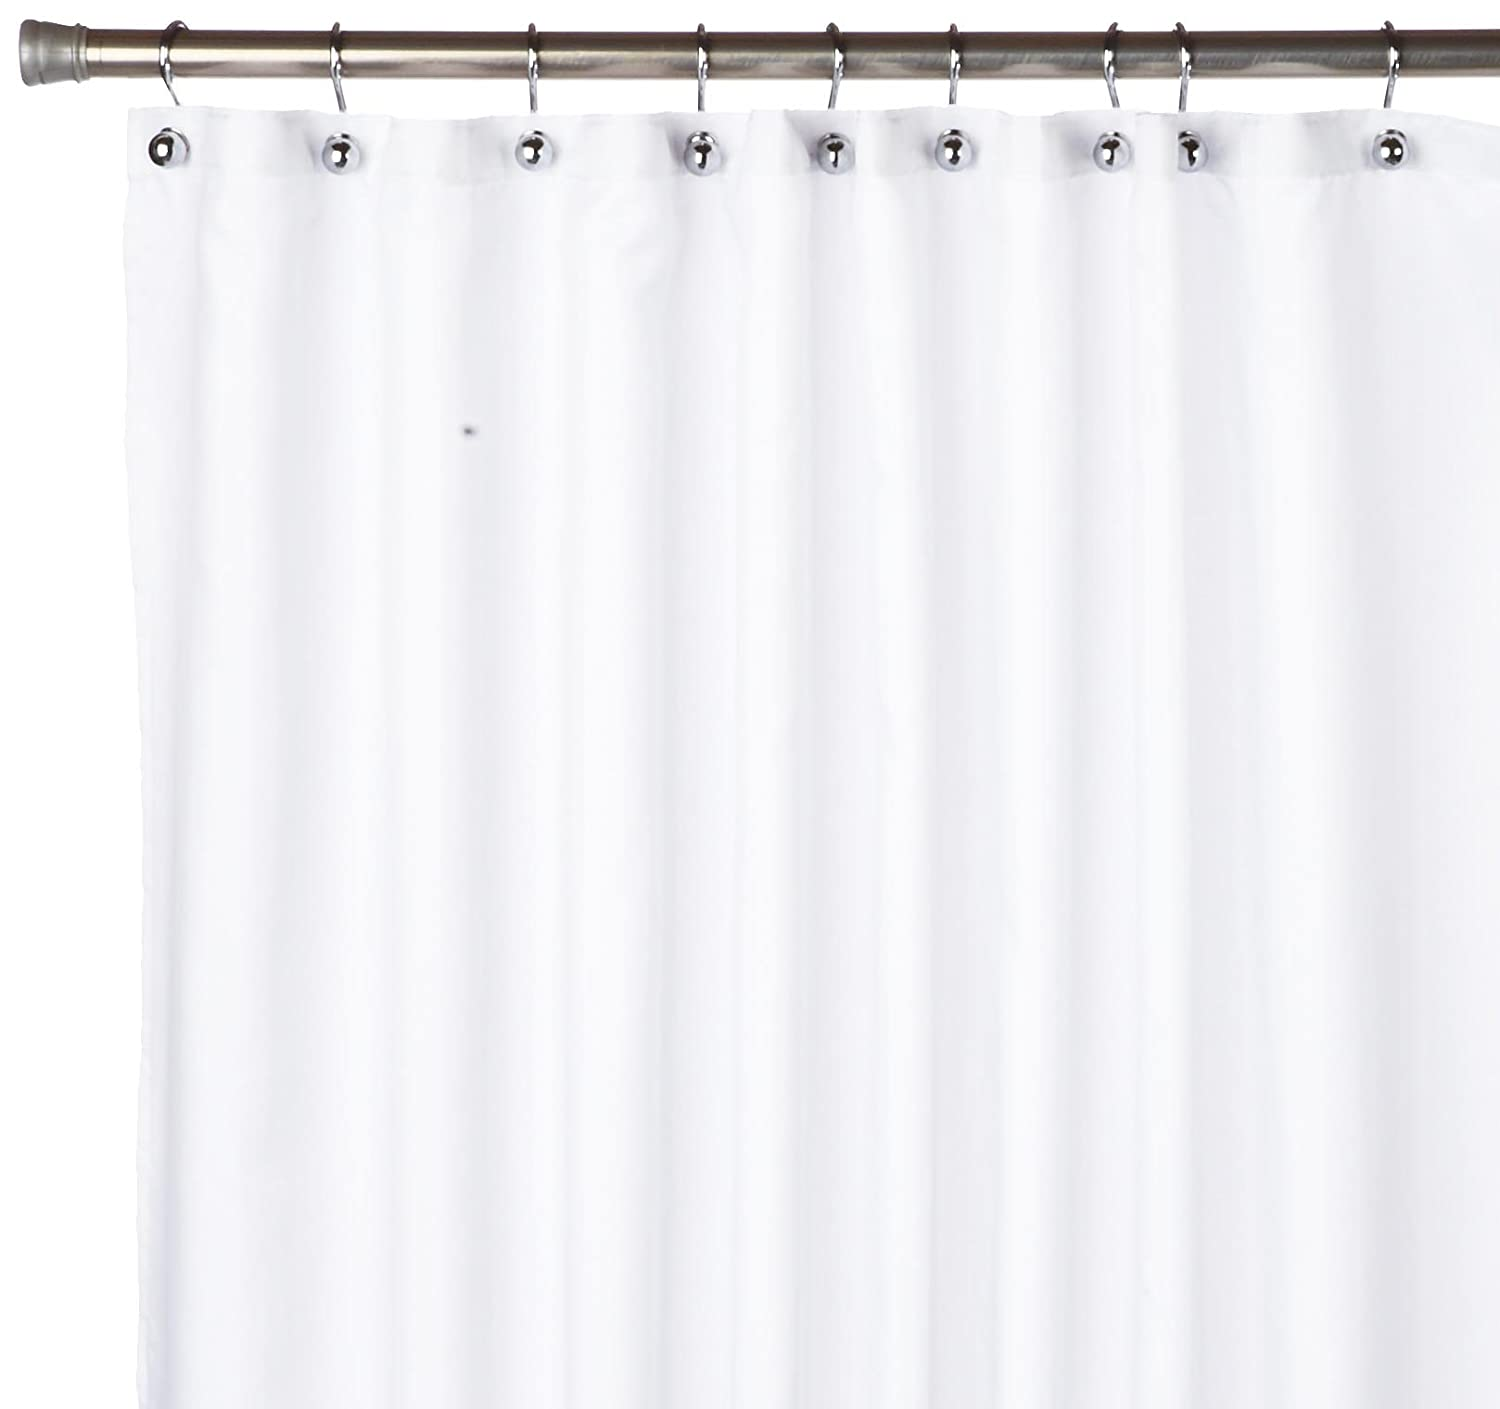 qlt spin hei fabric liner curtain prod shower p wid liners cannon